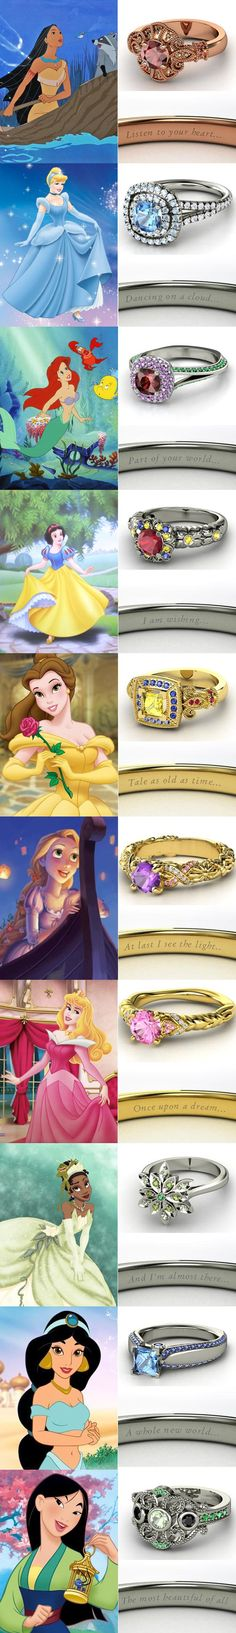 Disney Princess Wedding Rings by Gemvara - these would make cool engagement rings, or just awesome gifts:) I like all except Snow White's, Ariel's, and Cinderella's. I LOVE Pocahontas's, Belle's, Tiana's, and Mulan's